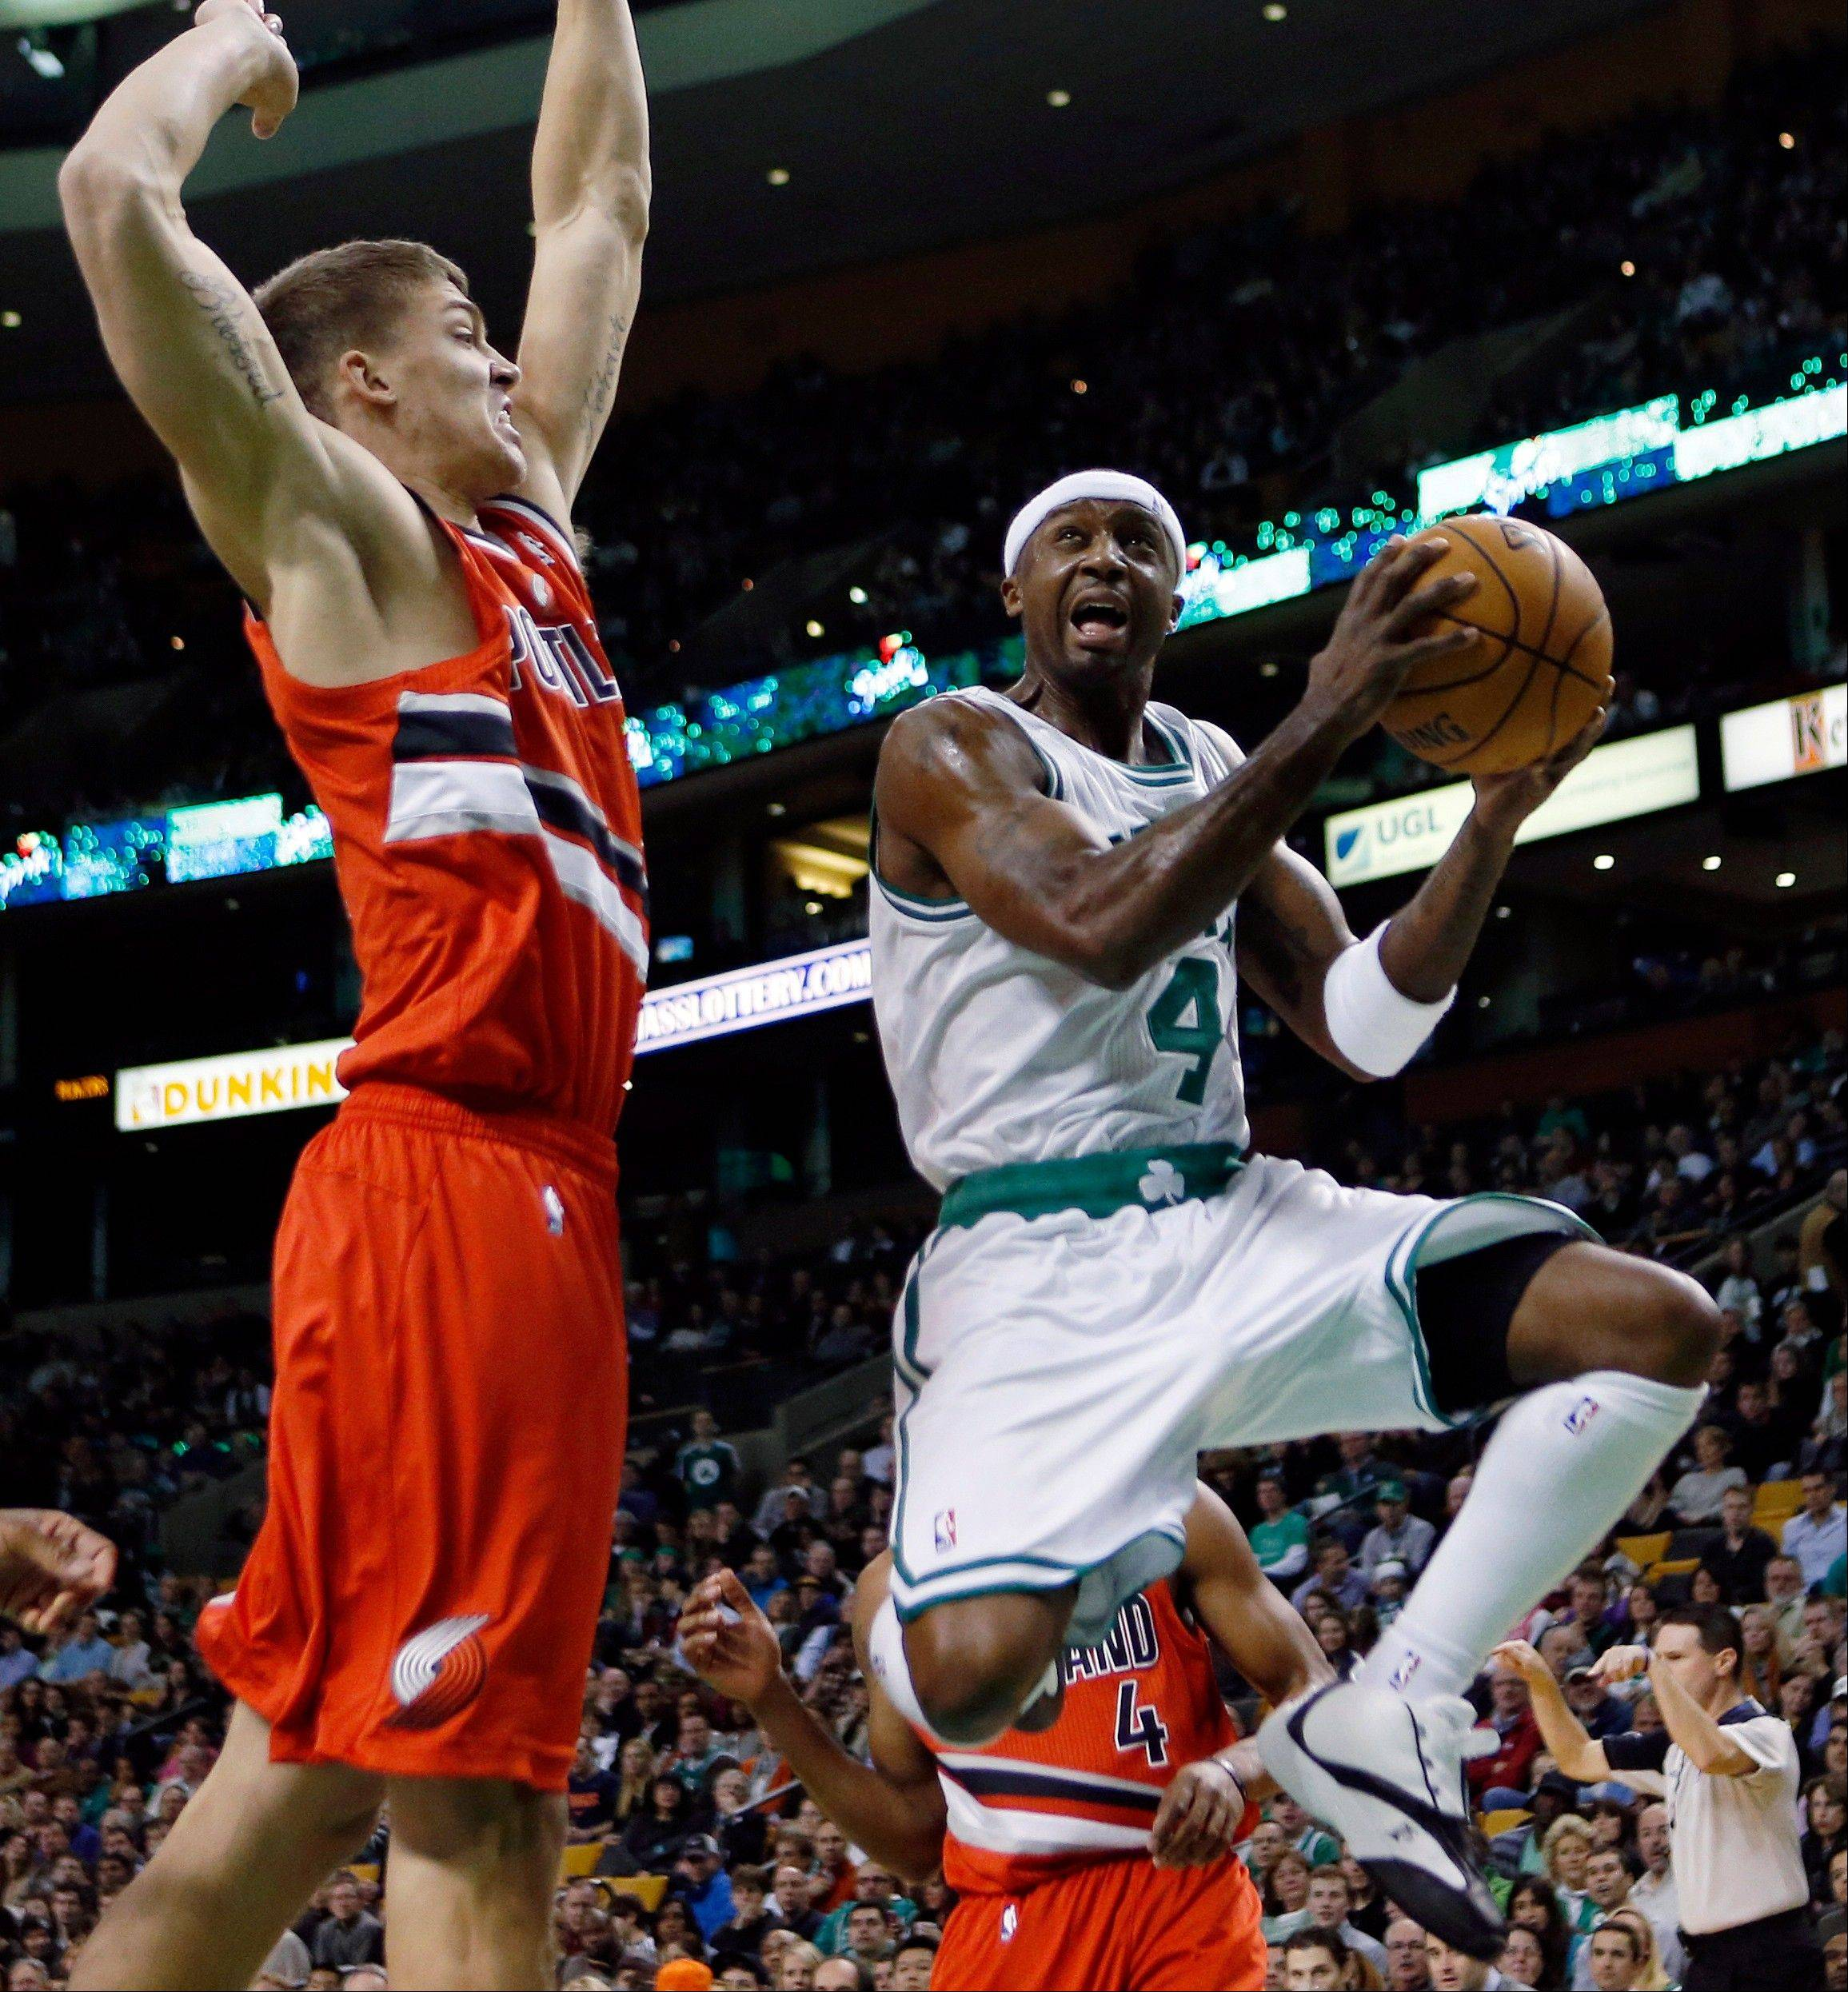 Boston Celtics guard Jason Terry looks to shot against Portland Trail Blazers center Meyers Leonard Friday during the first quarter in Boston.